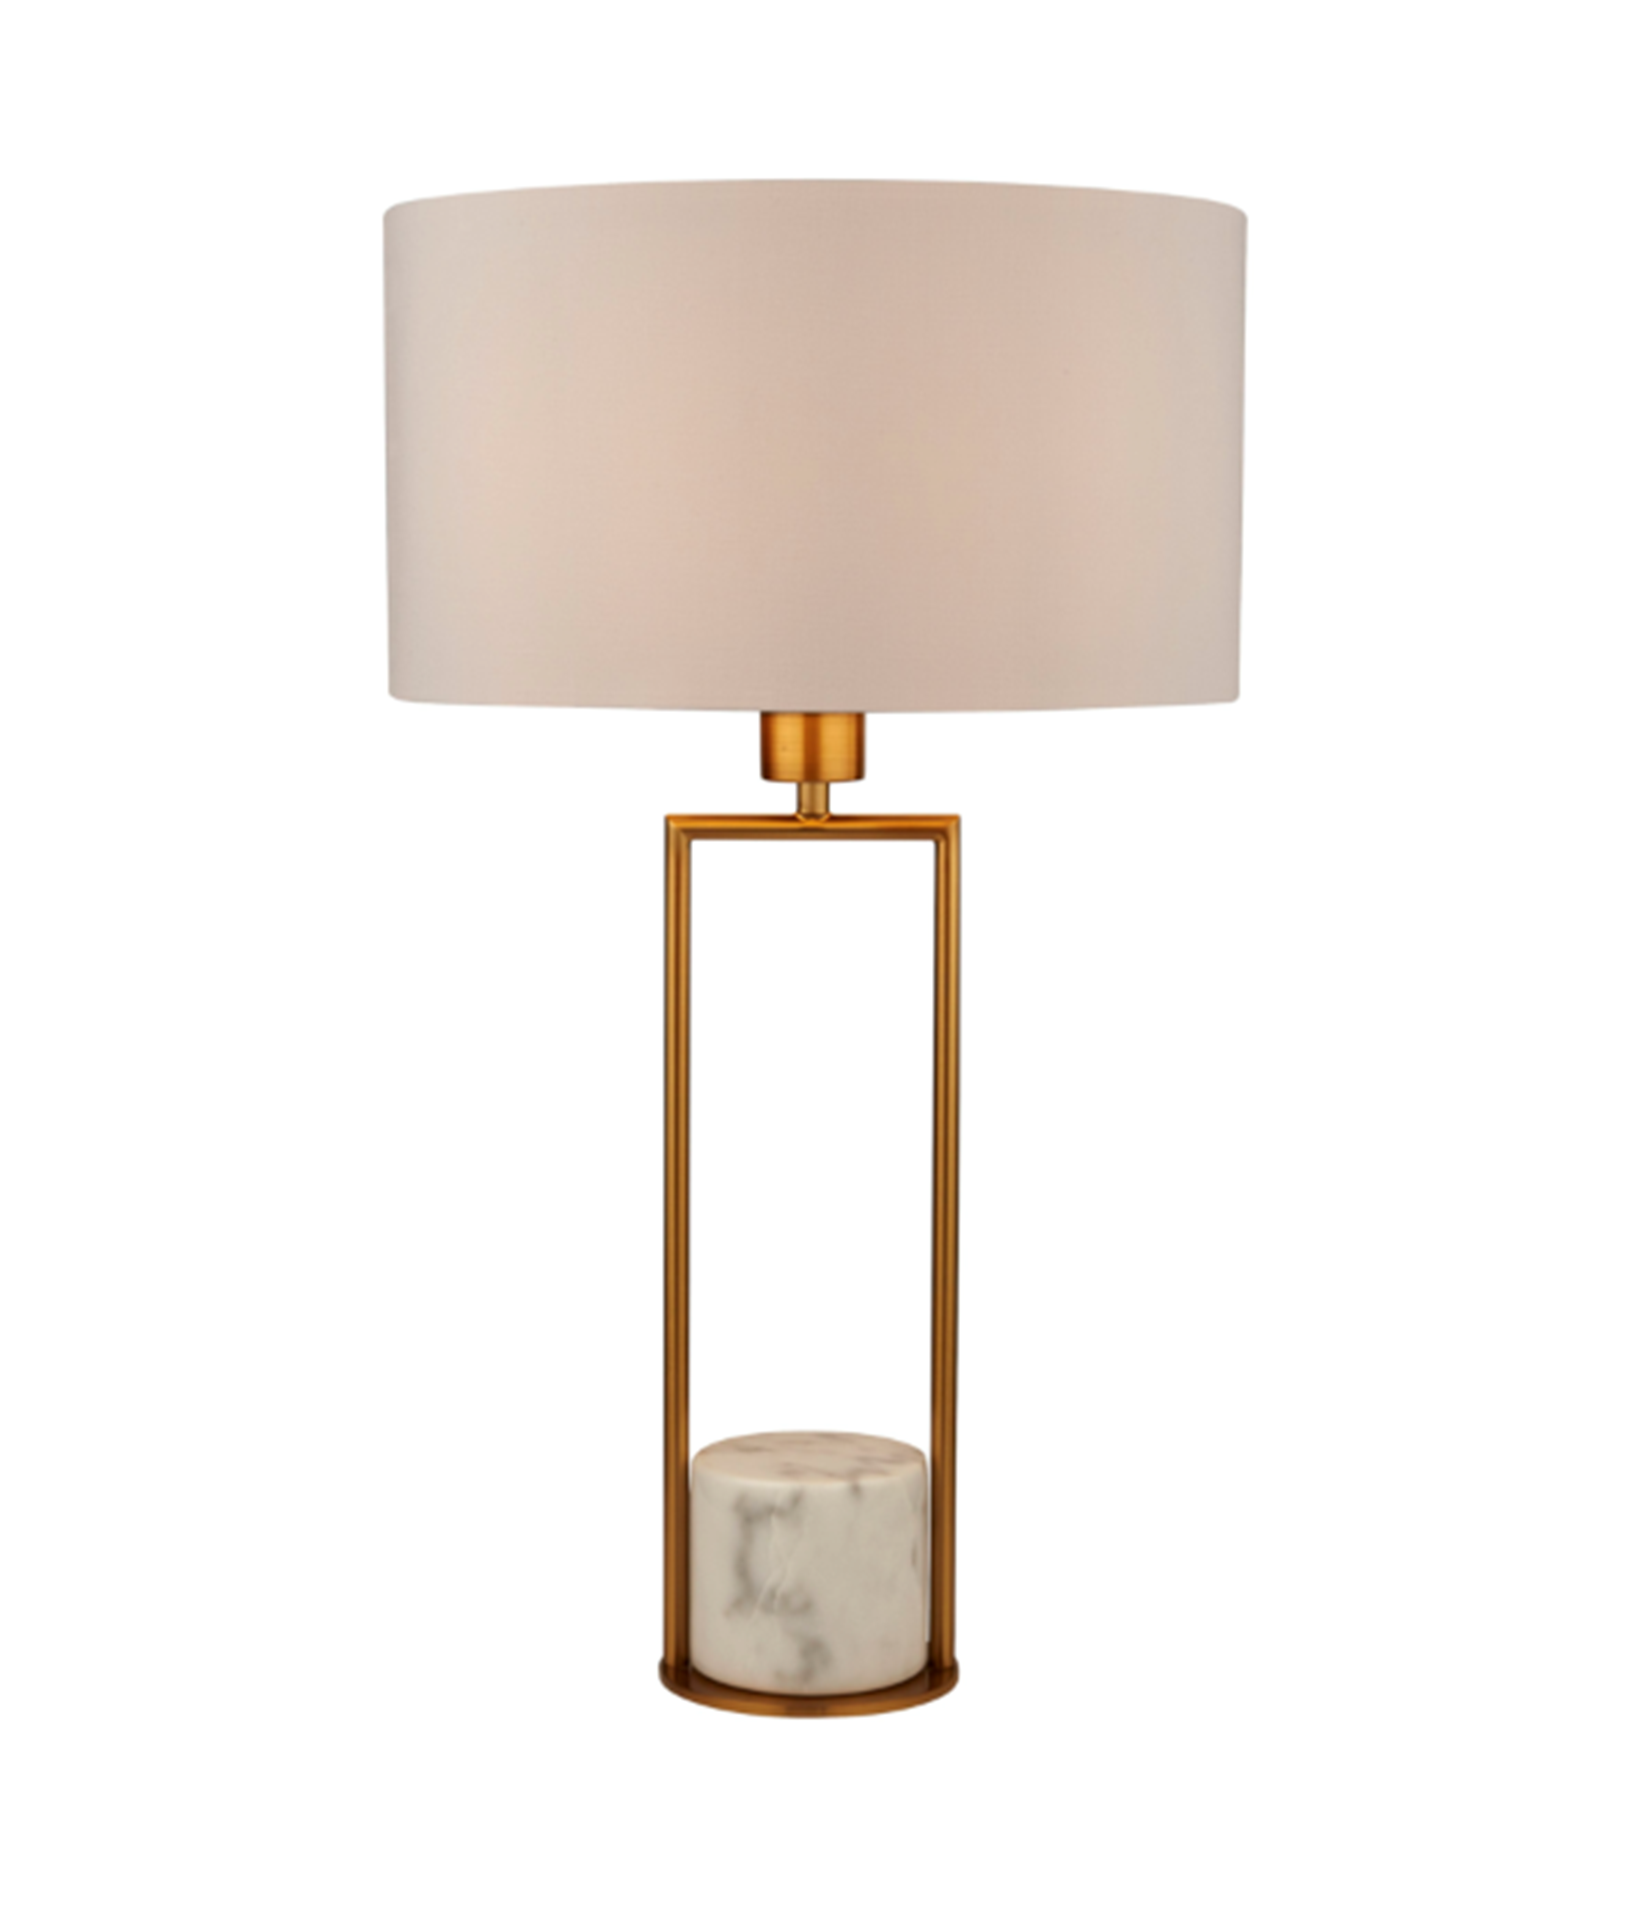 SEARCHLIGHT GOLD TABLE LAMP WITH WHITE MARBLE BASE AND WHITE DRUM SHADE 2871GO